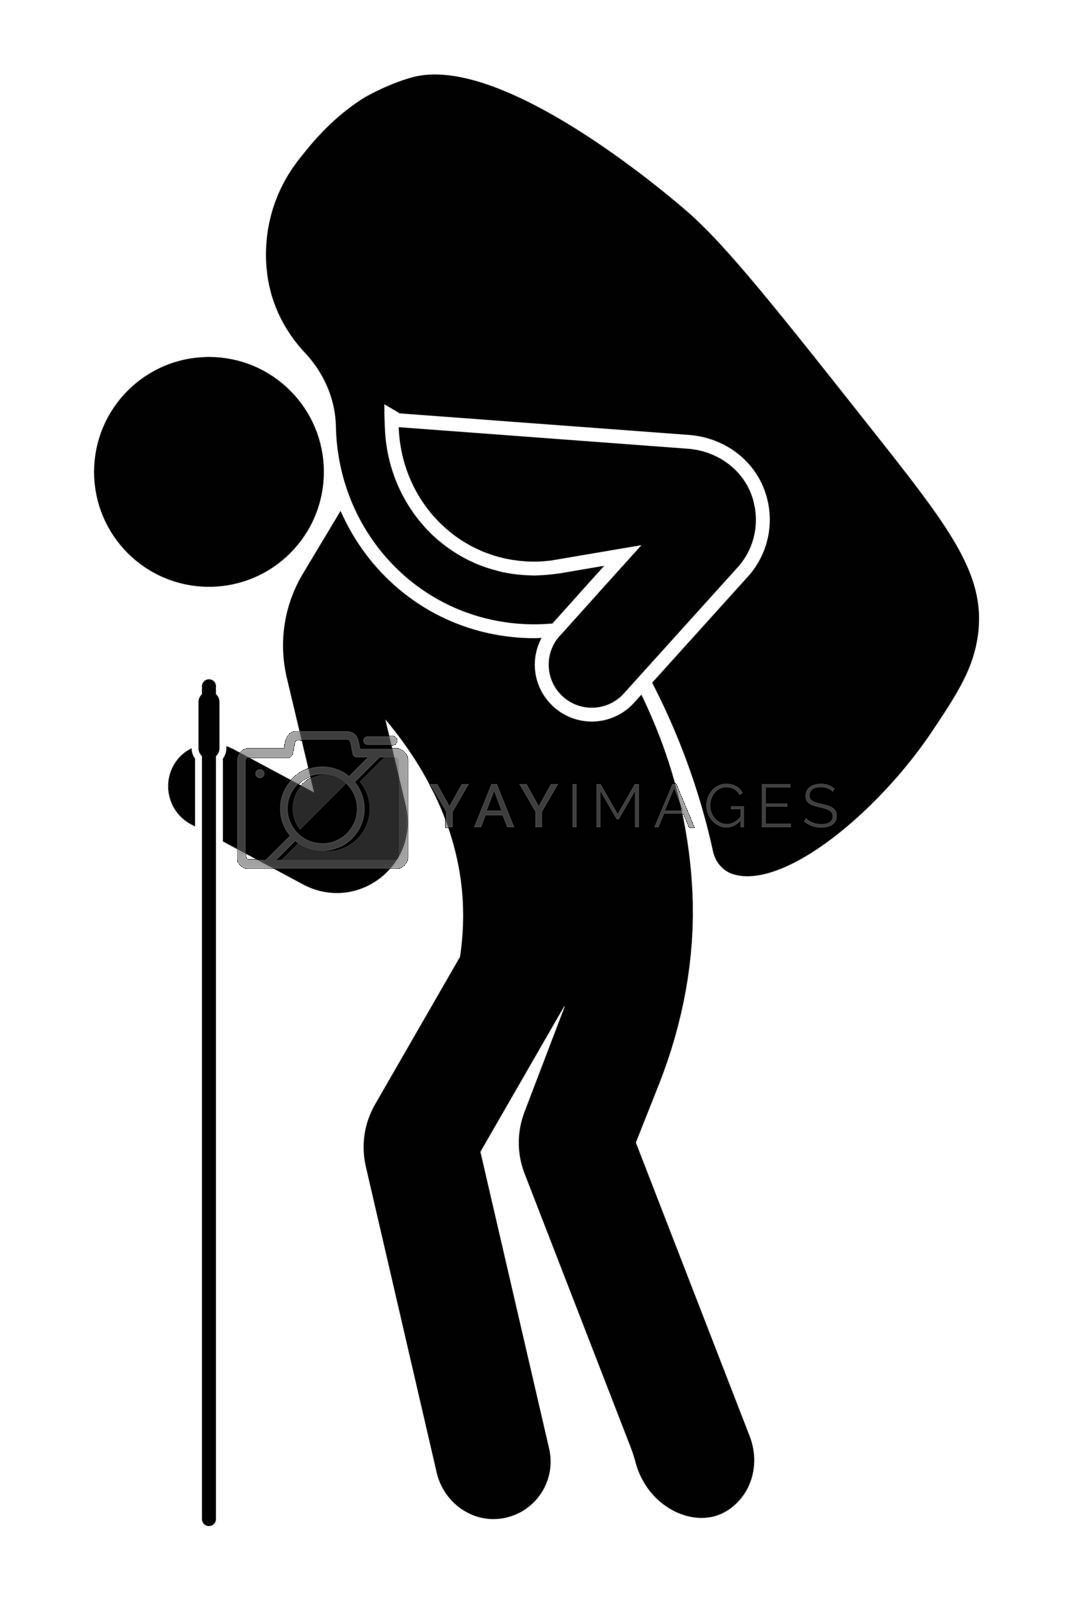 man carries a big bag, a backpack on his shoulder. Leans on a cane. Hiking, mountain climbing, travel. Isolated vector on white background